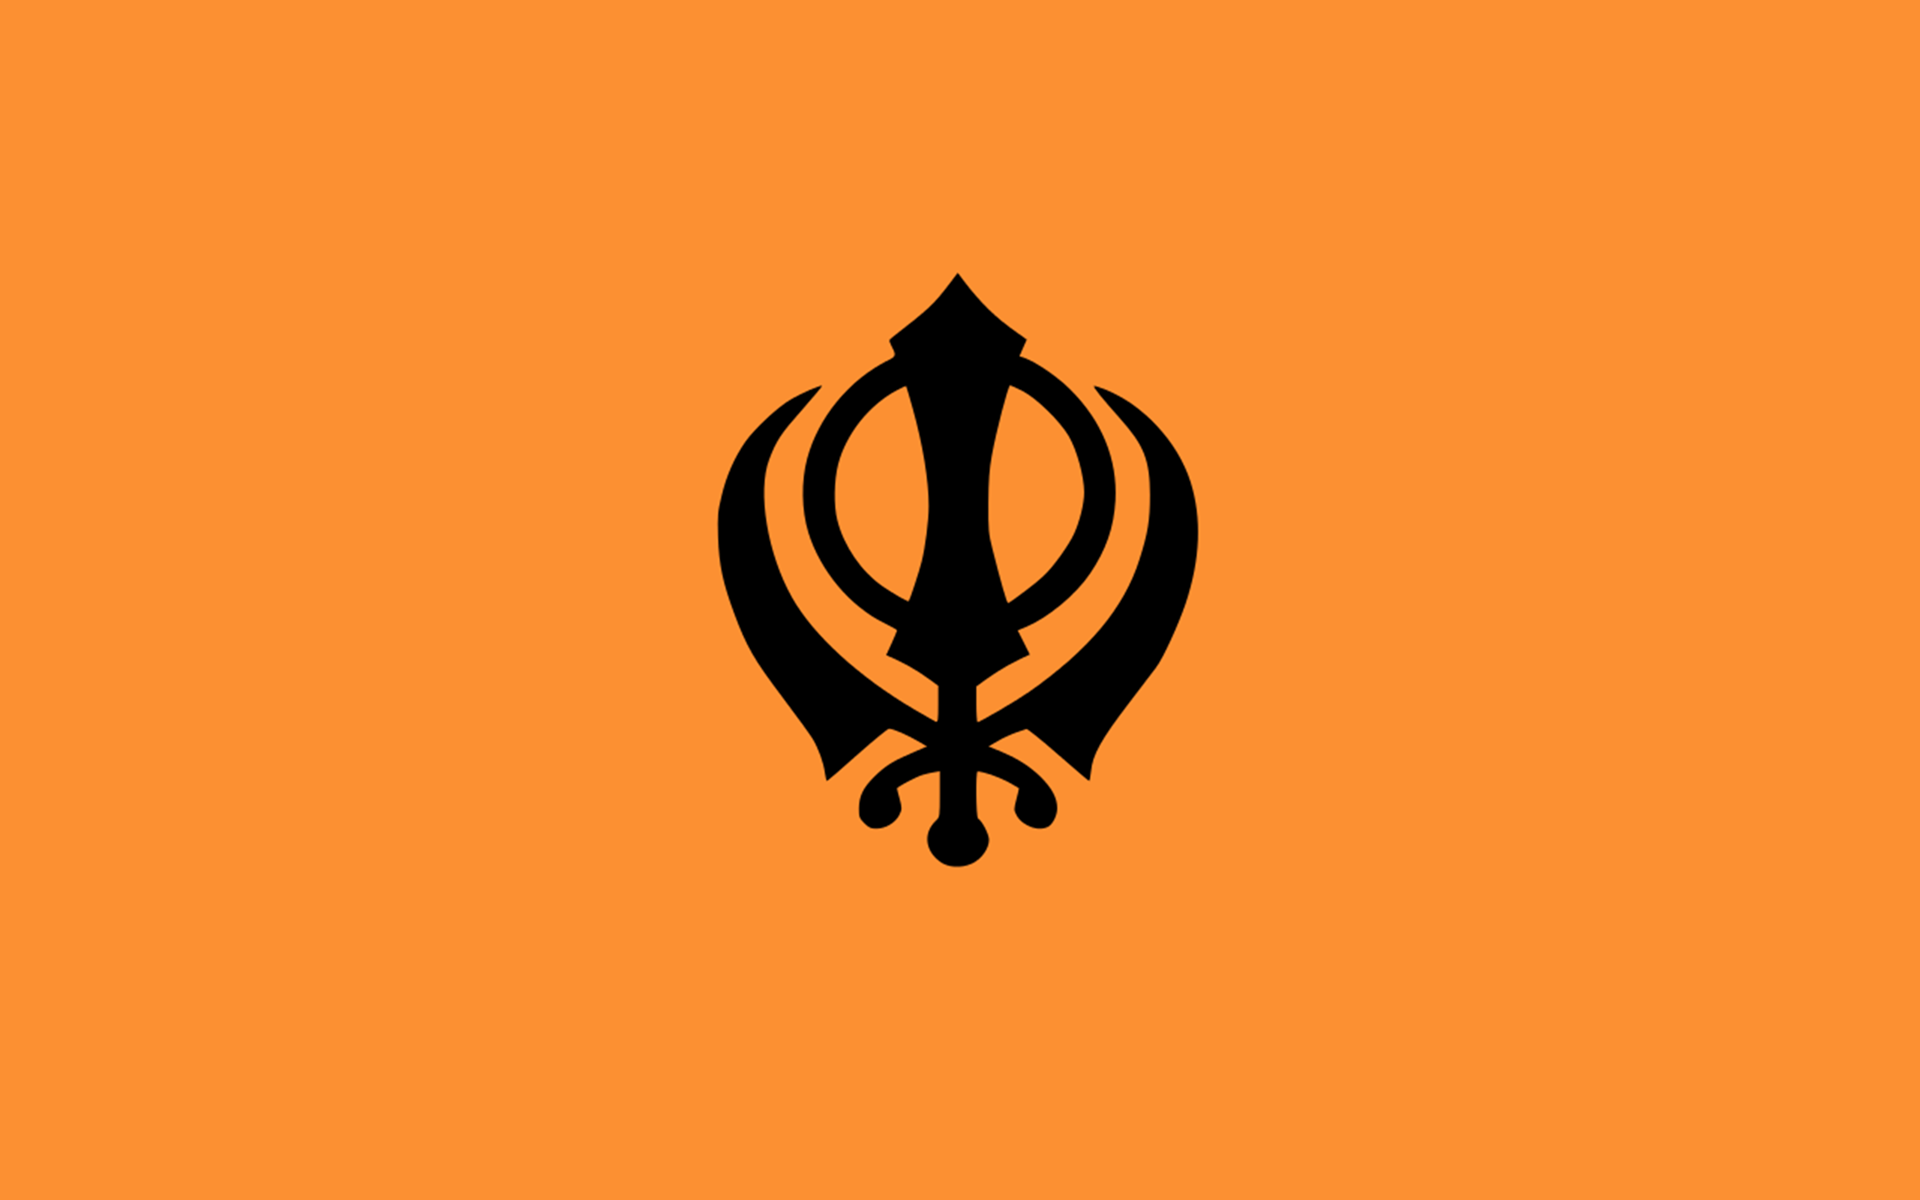 Sikh Symbol Khanda HD Wallpaper #01564 - Khanda HD PNG